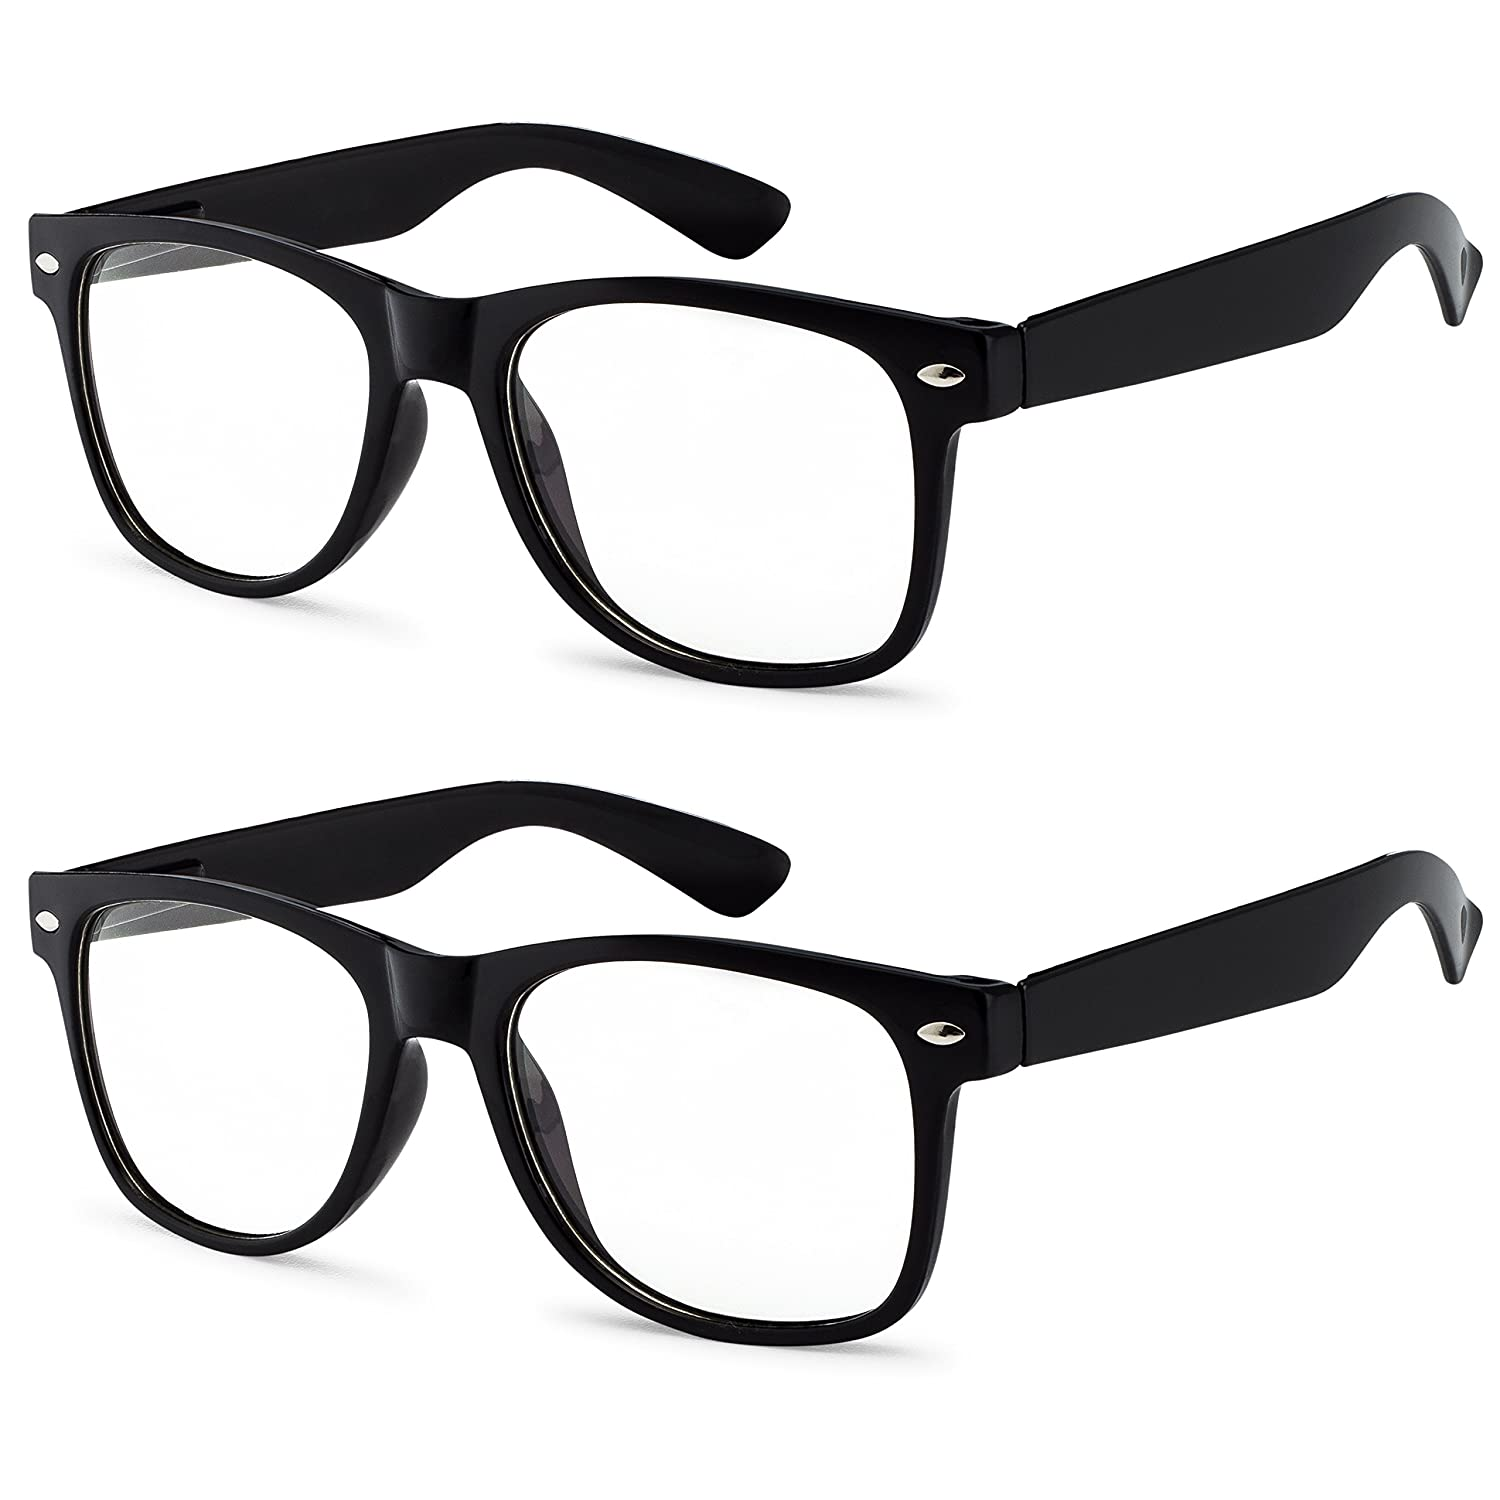 07fcbff017e Amazon.com  3 Pairs Classic Vintage Sunglasses 2 BLACK and 1 WHITE Frame Clear  lens OWL  Clothing